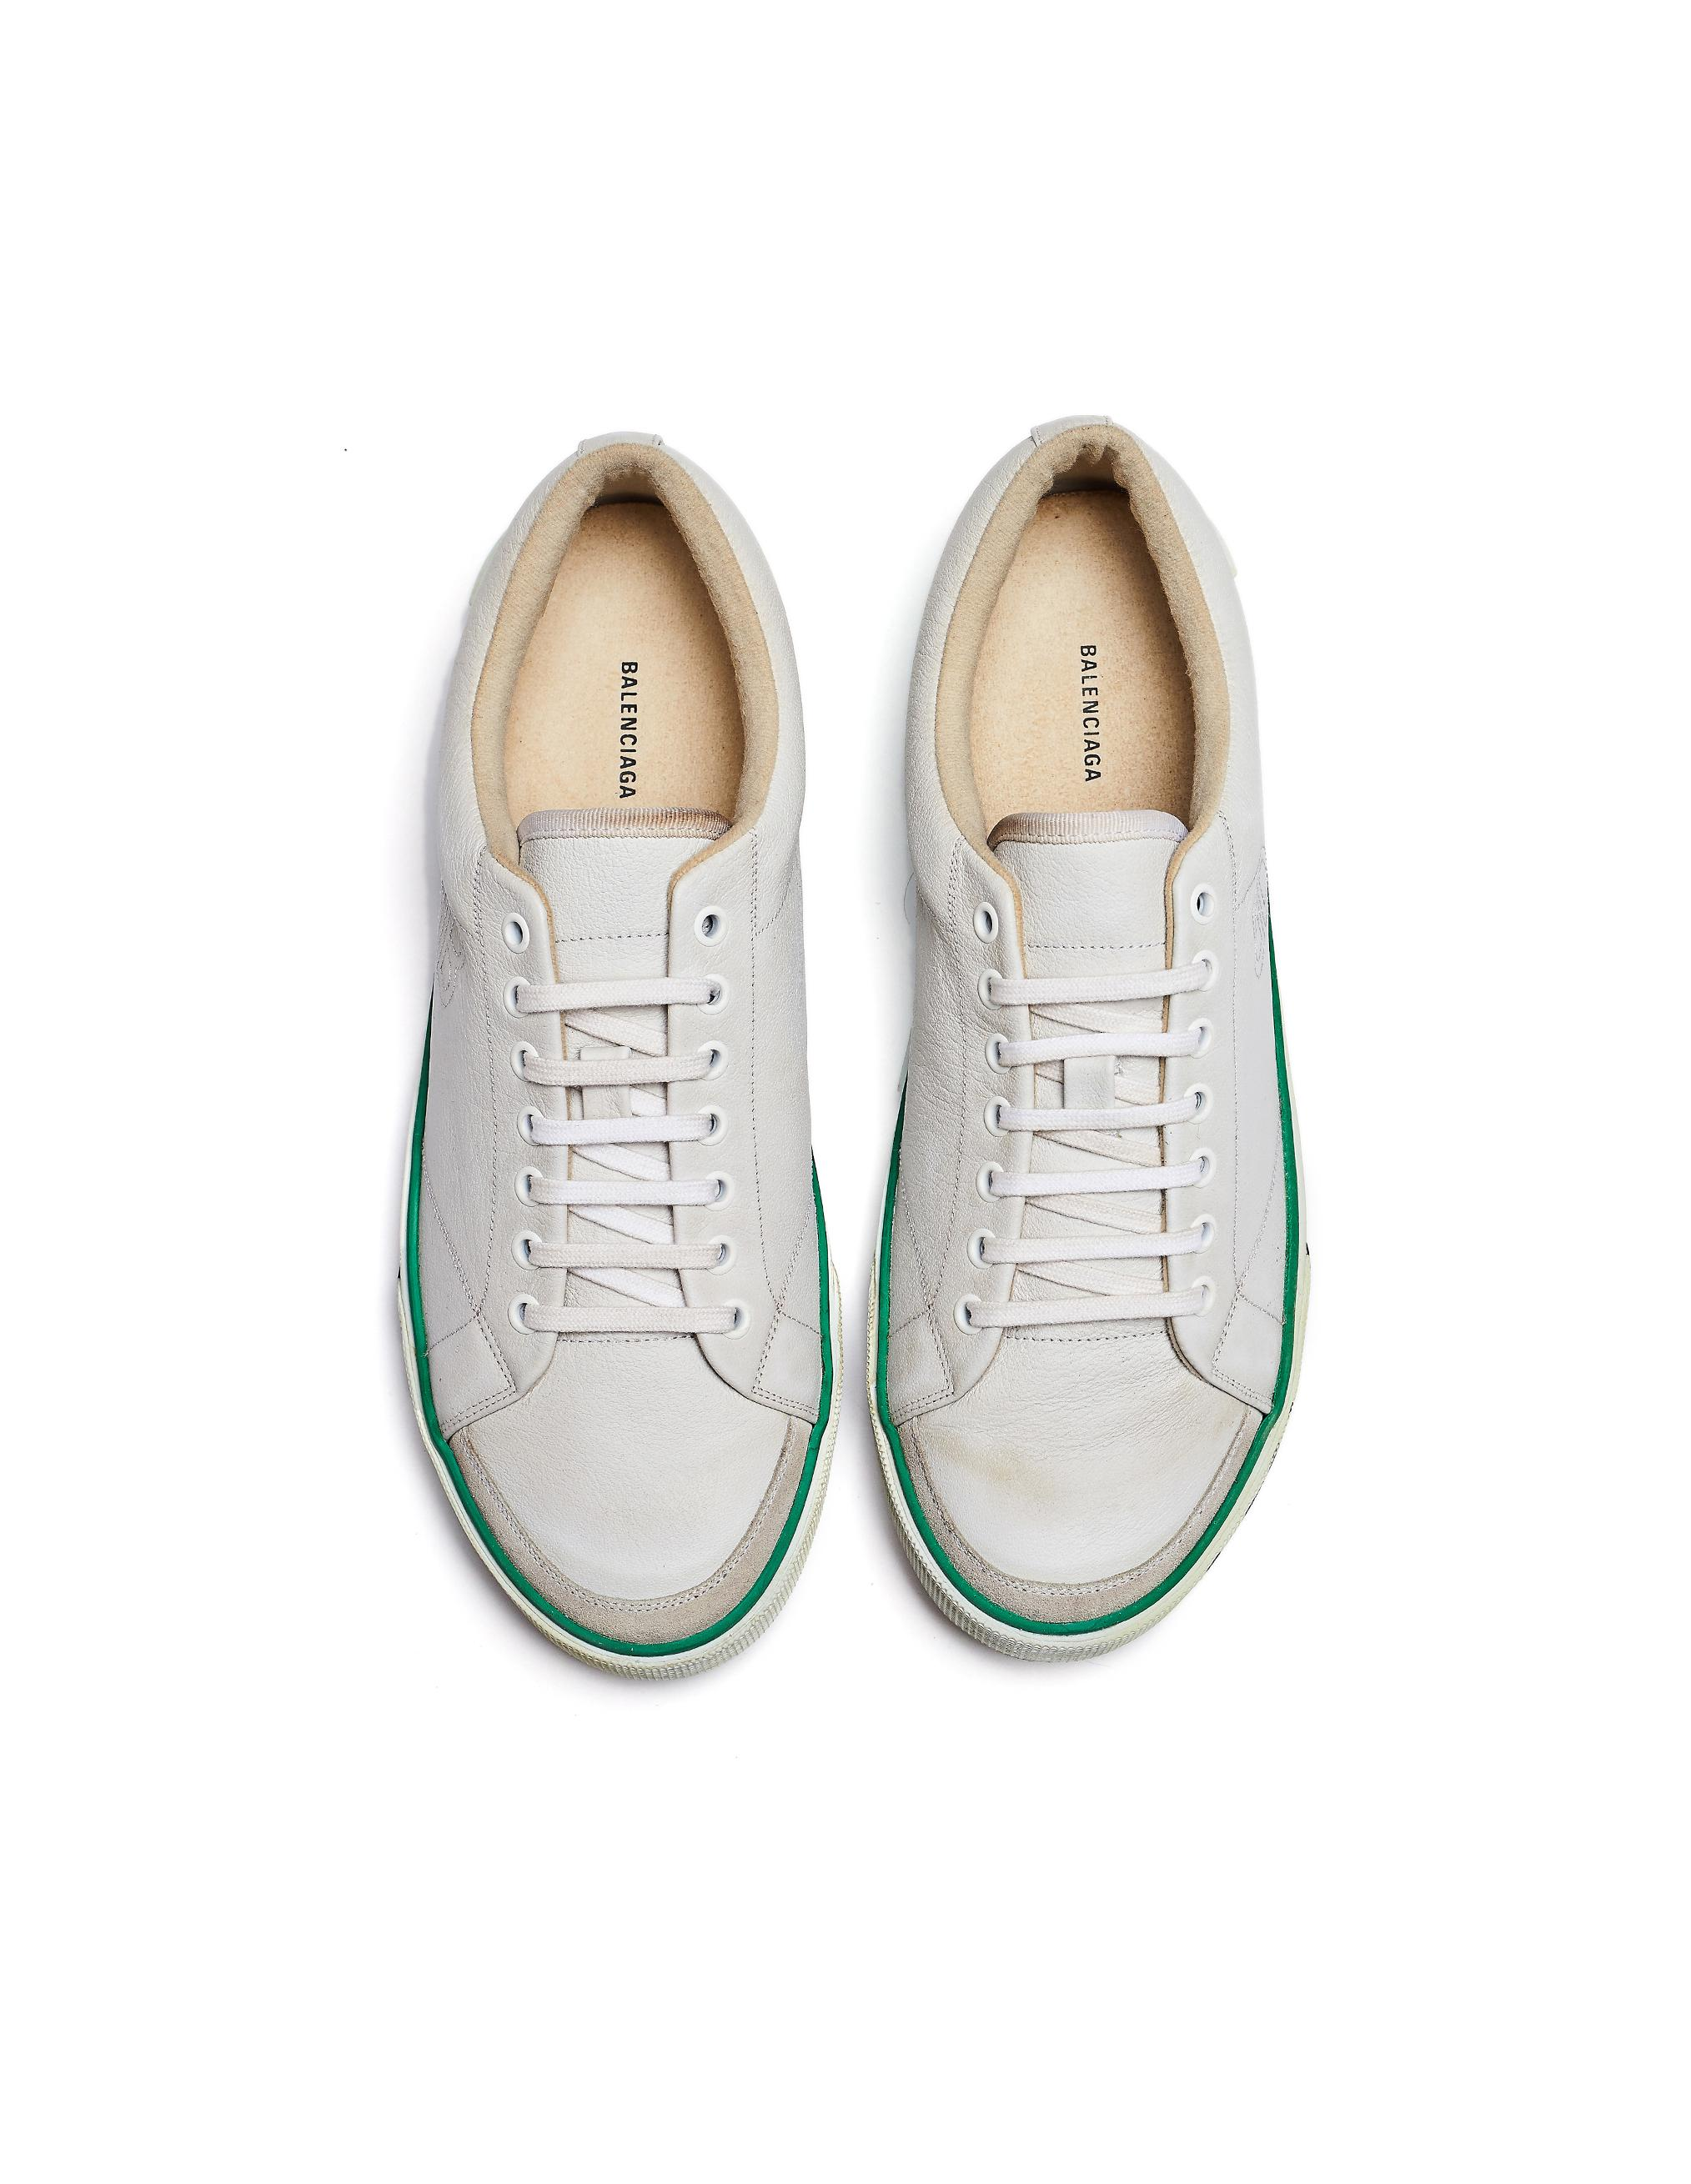 48ef616d1595 Lyst - Balenciaga White Leather Match Sneakers in White for Men - Save 45%